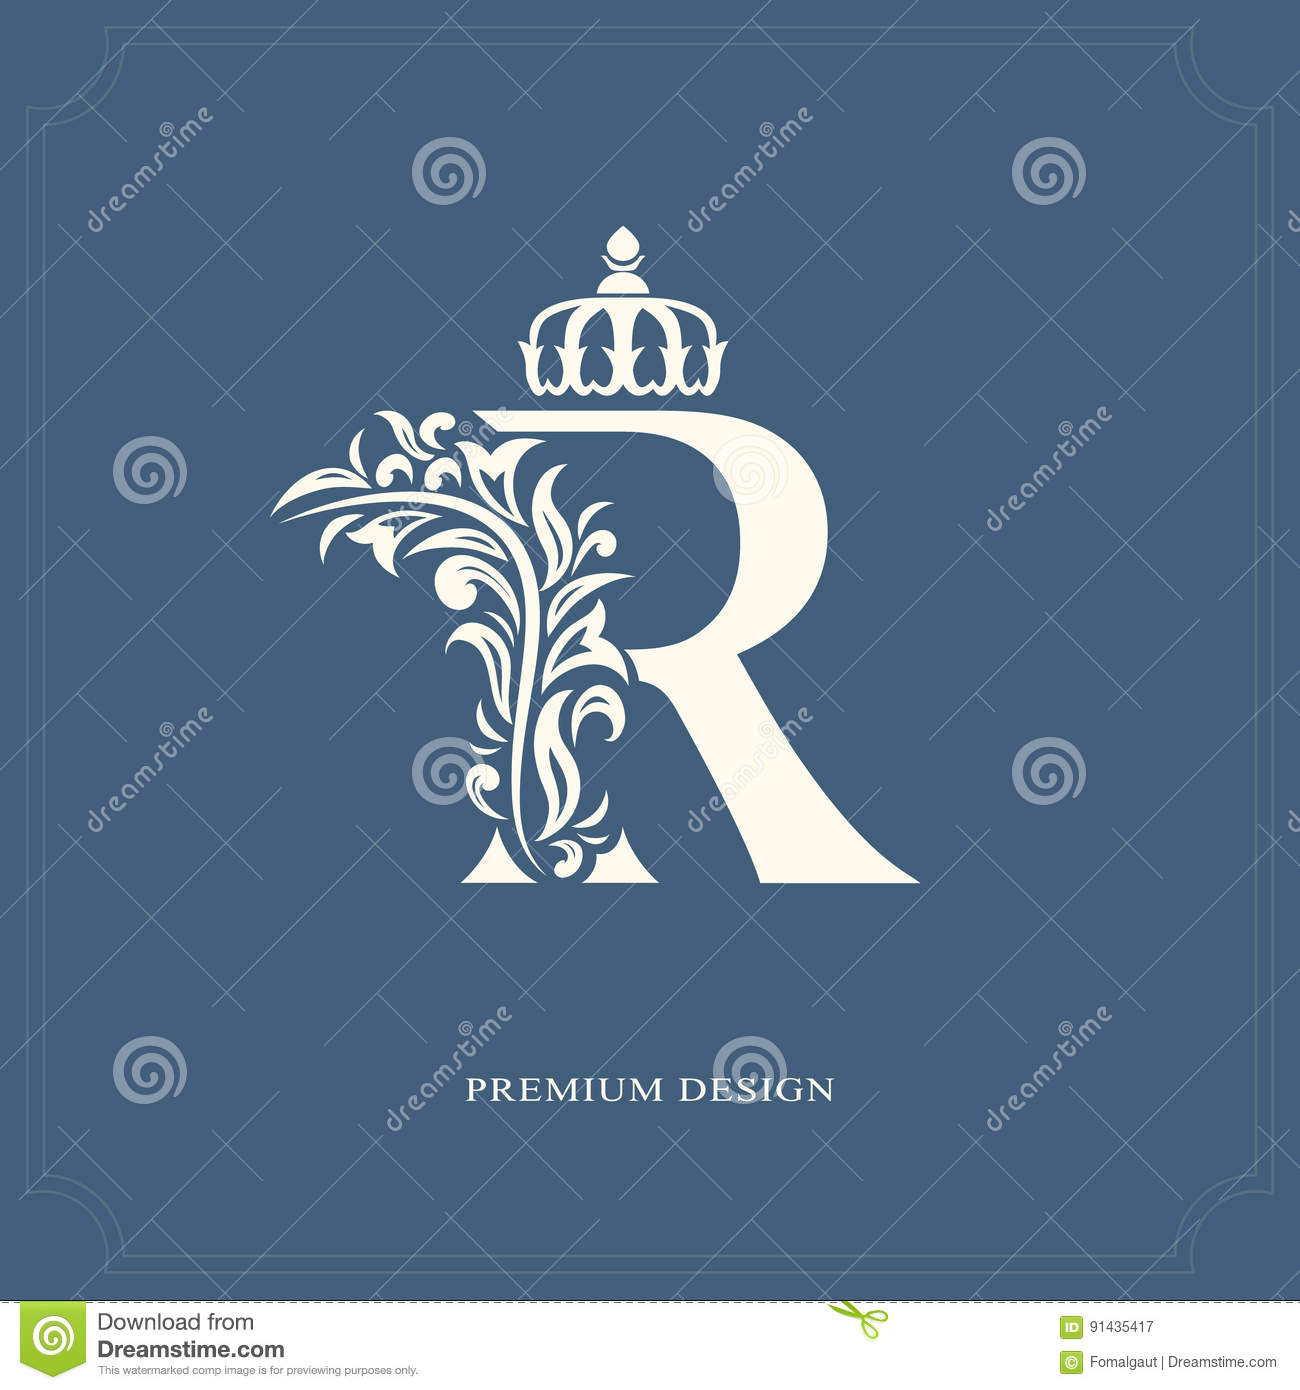 Download Elegant Letter R With A Crown Graceful Royal Style Calligraphic Beautiful Logo